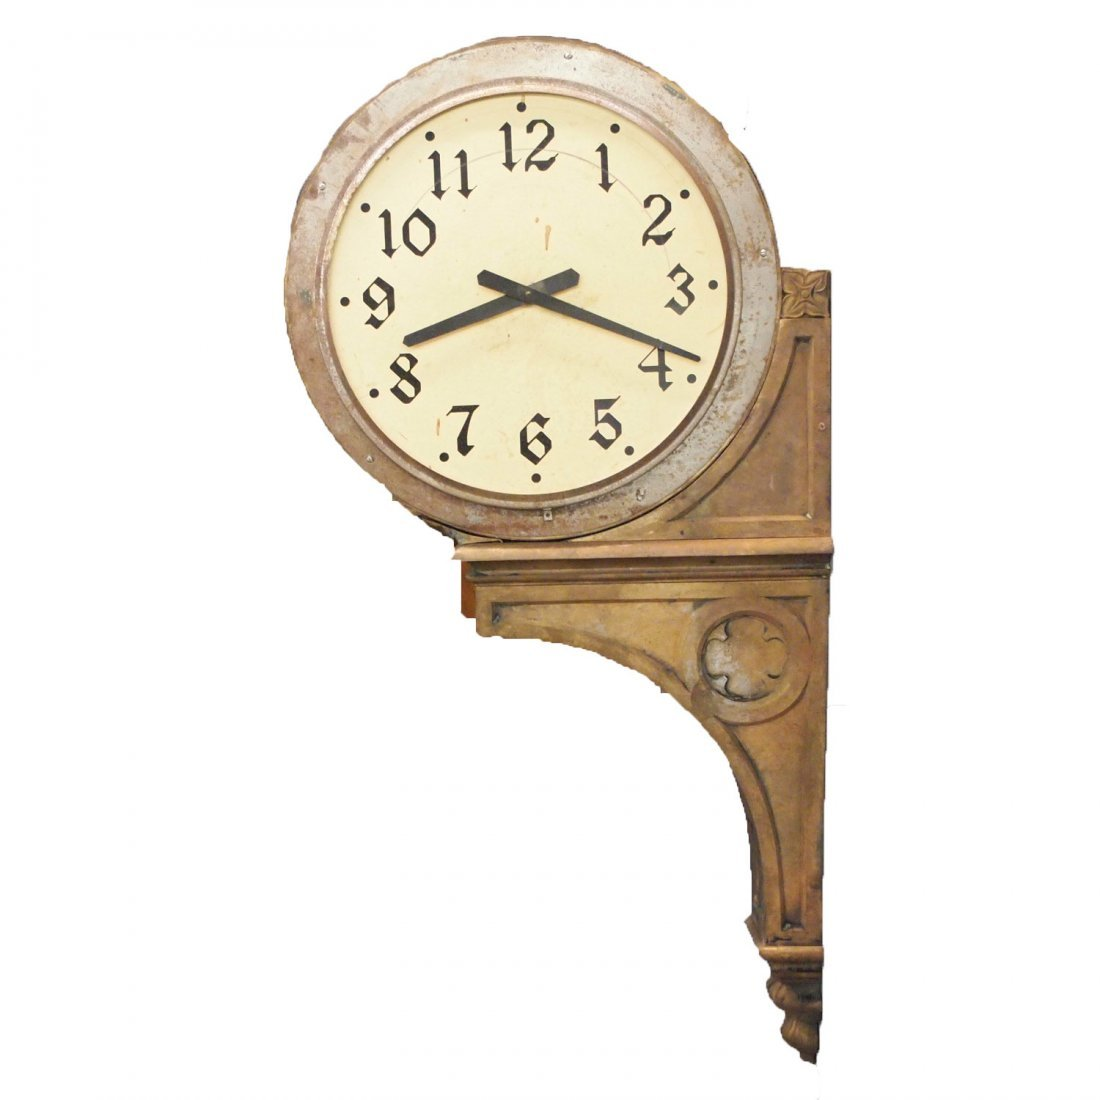 Twin dial Station clock